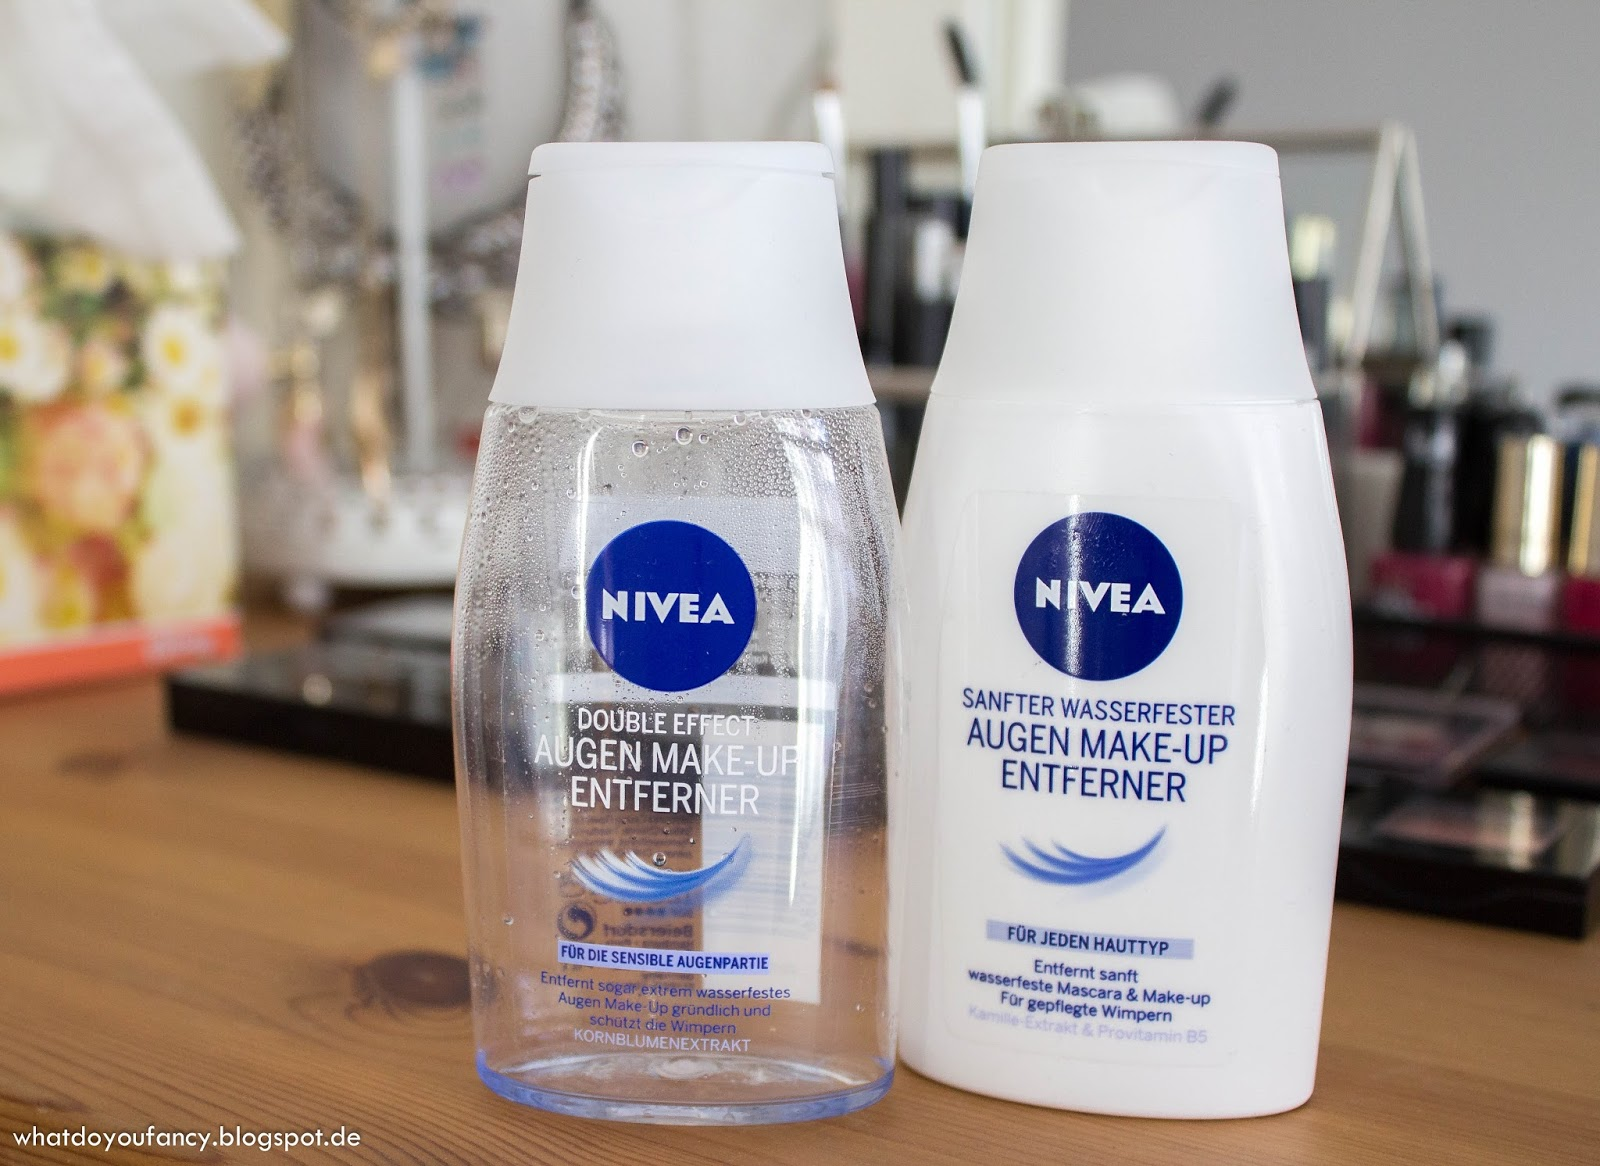 Nivea Double Effect Augen-Make-Up-Entferner